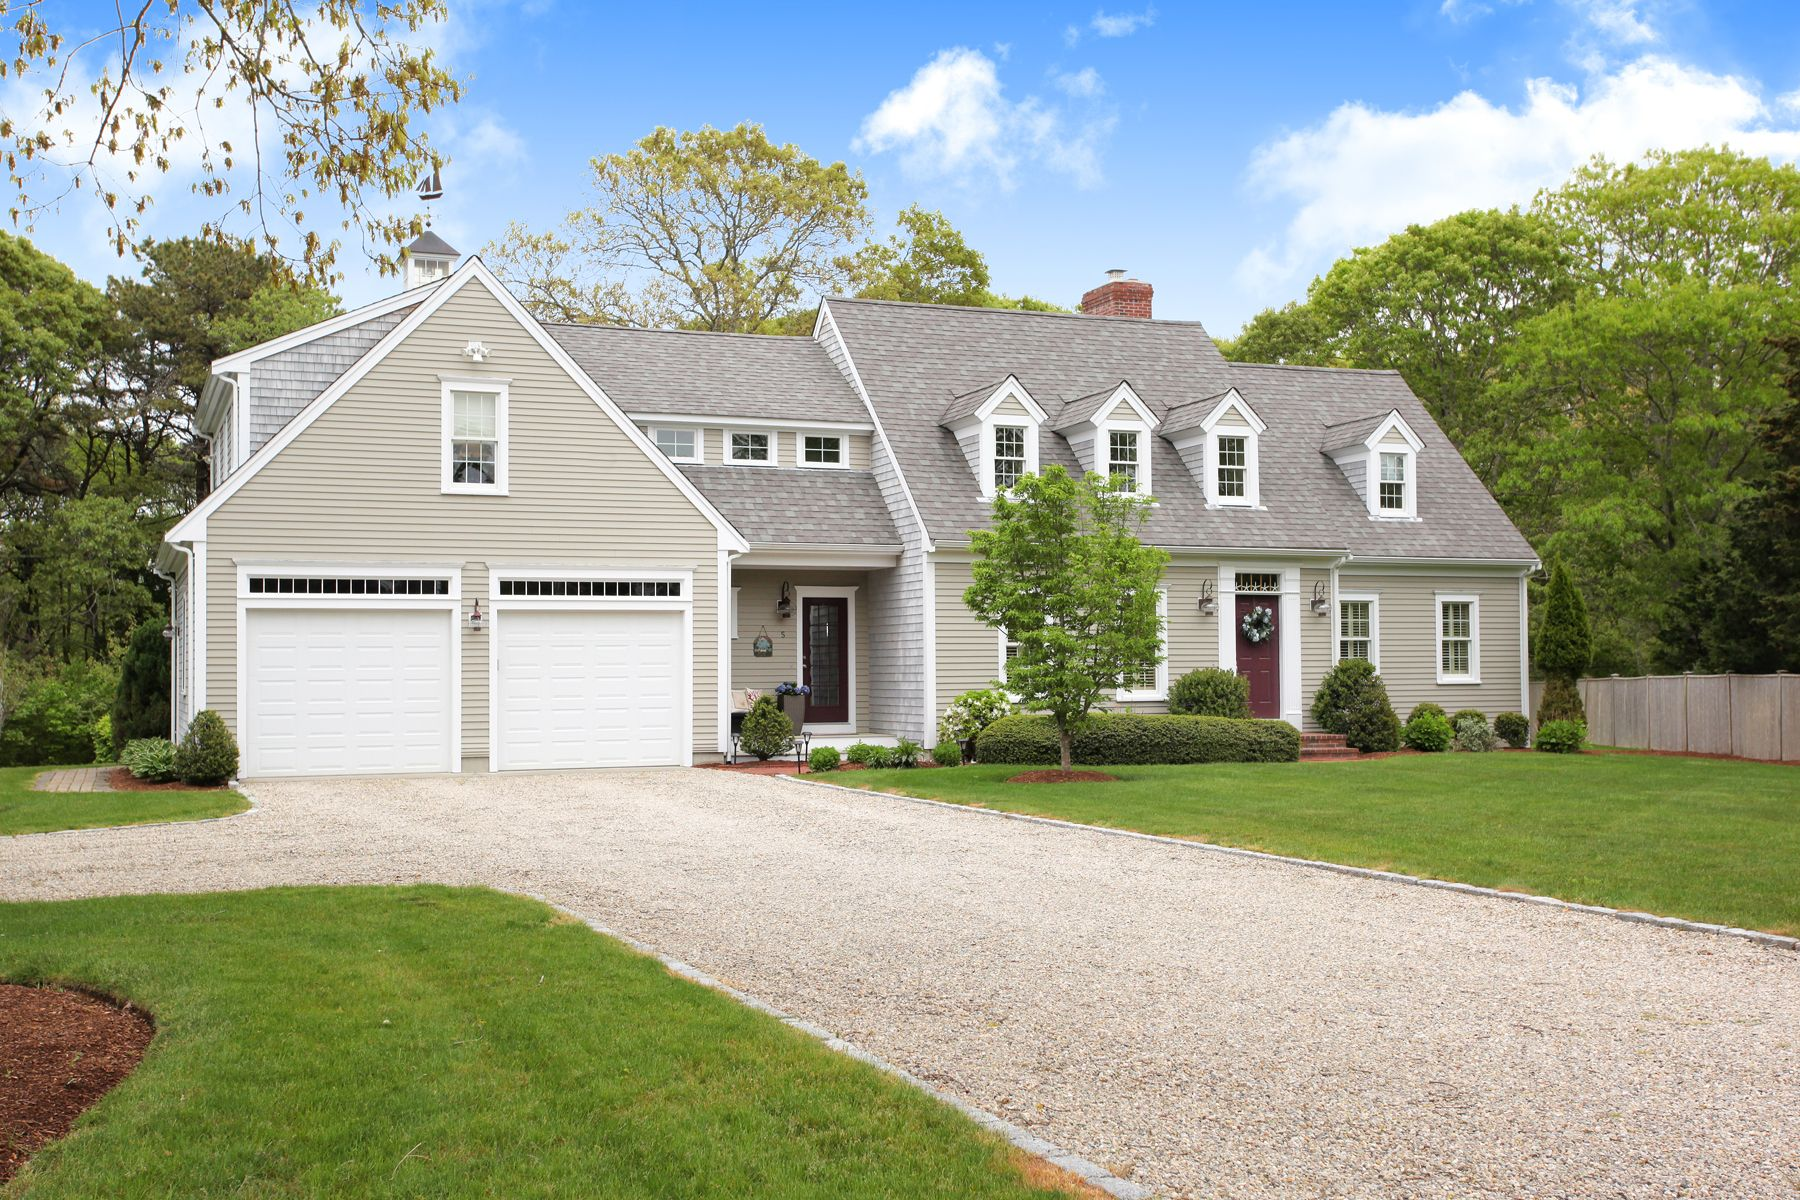 Single Family Homes for Active at 5 Cowslip Path East Sandwich, Massachusetts 02537 United States